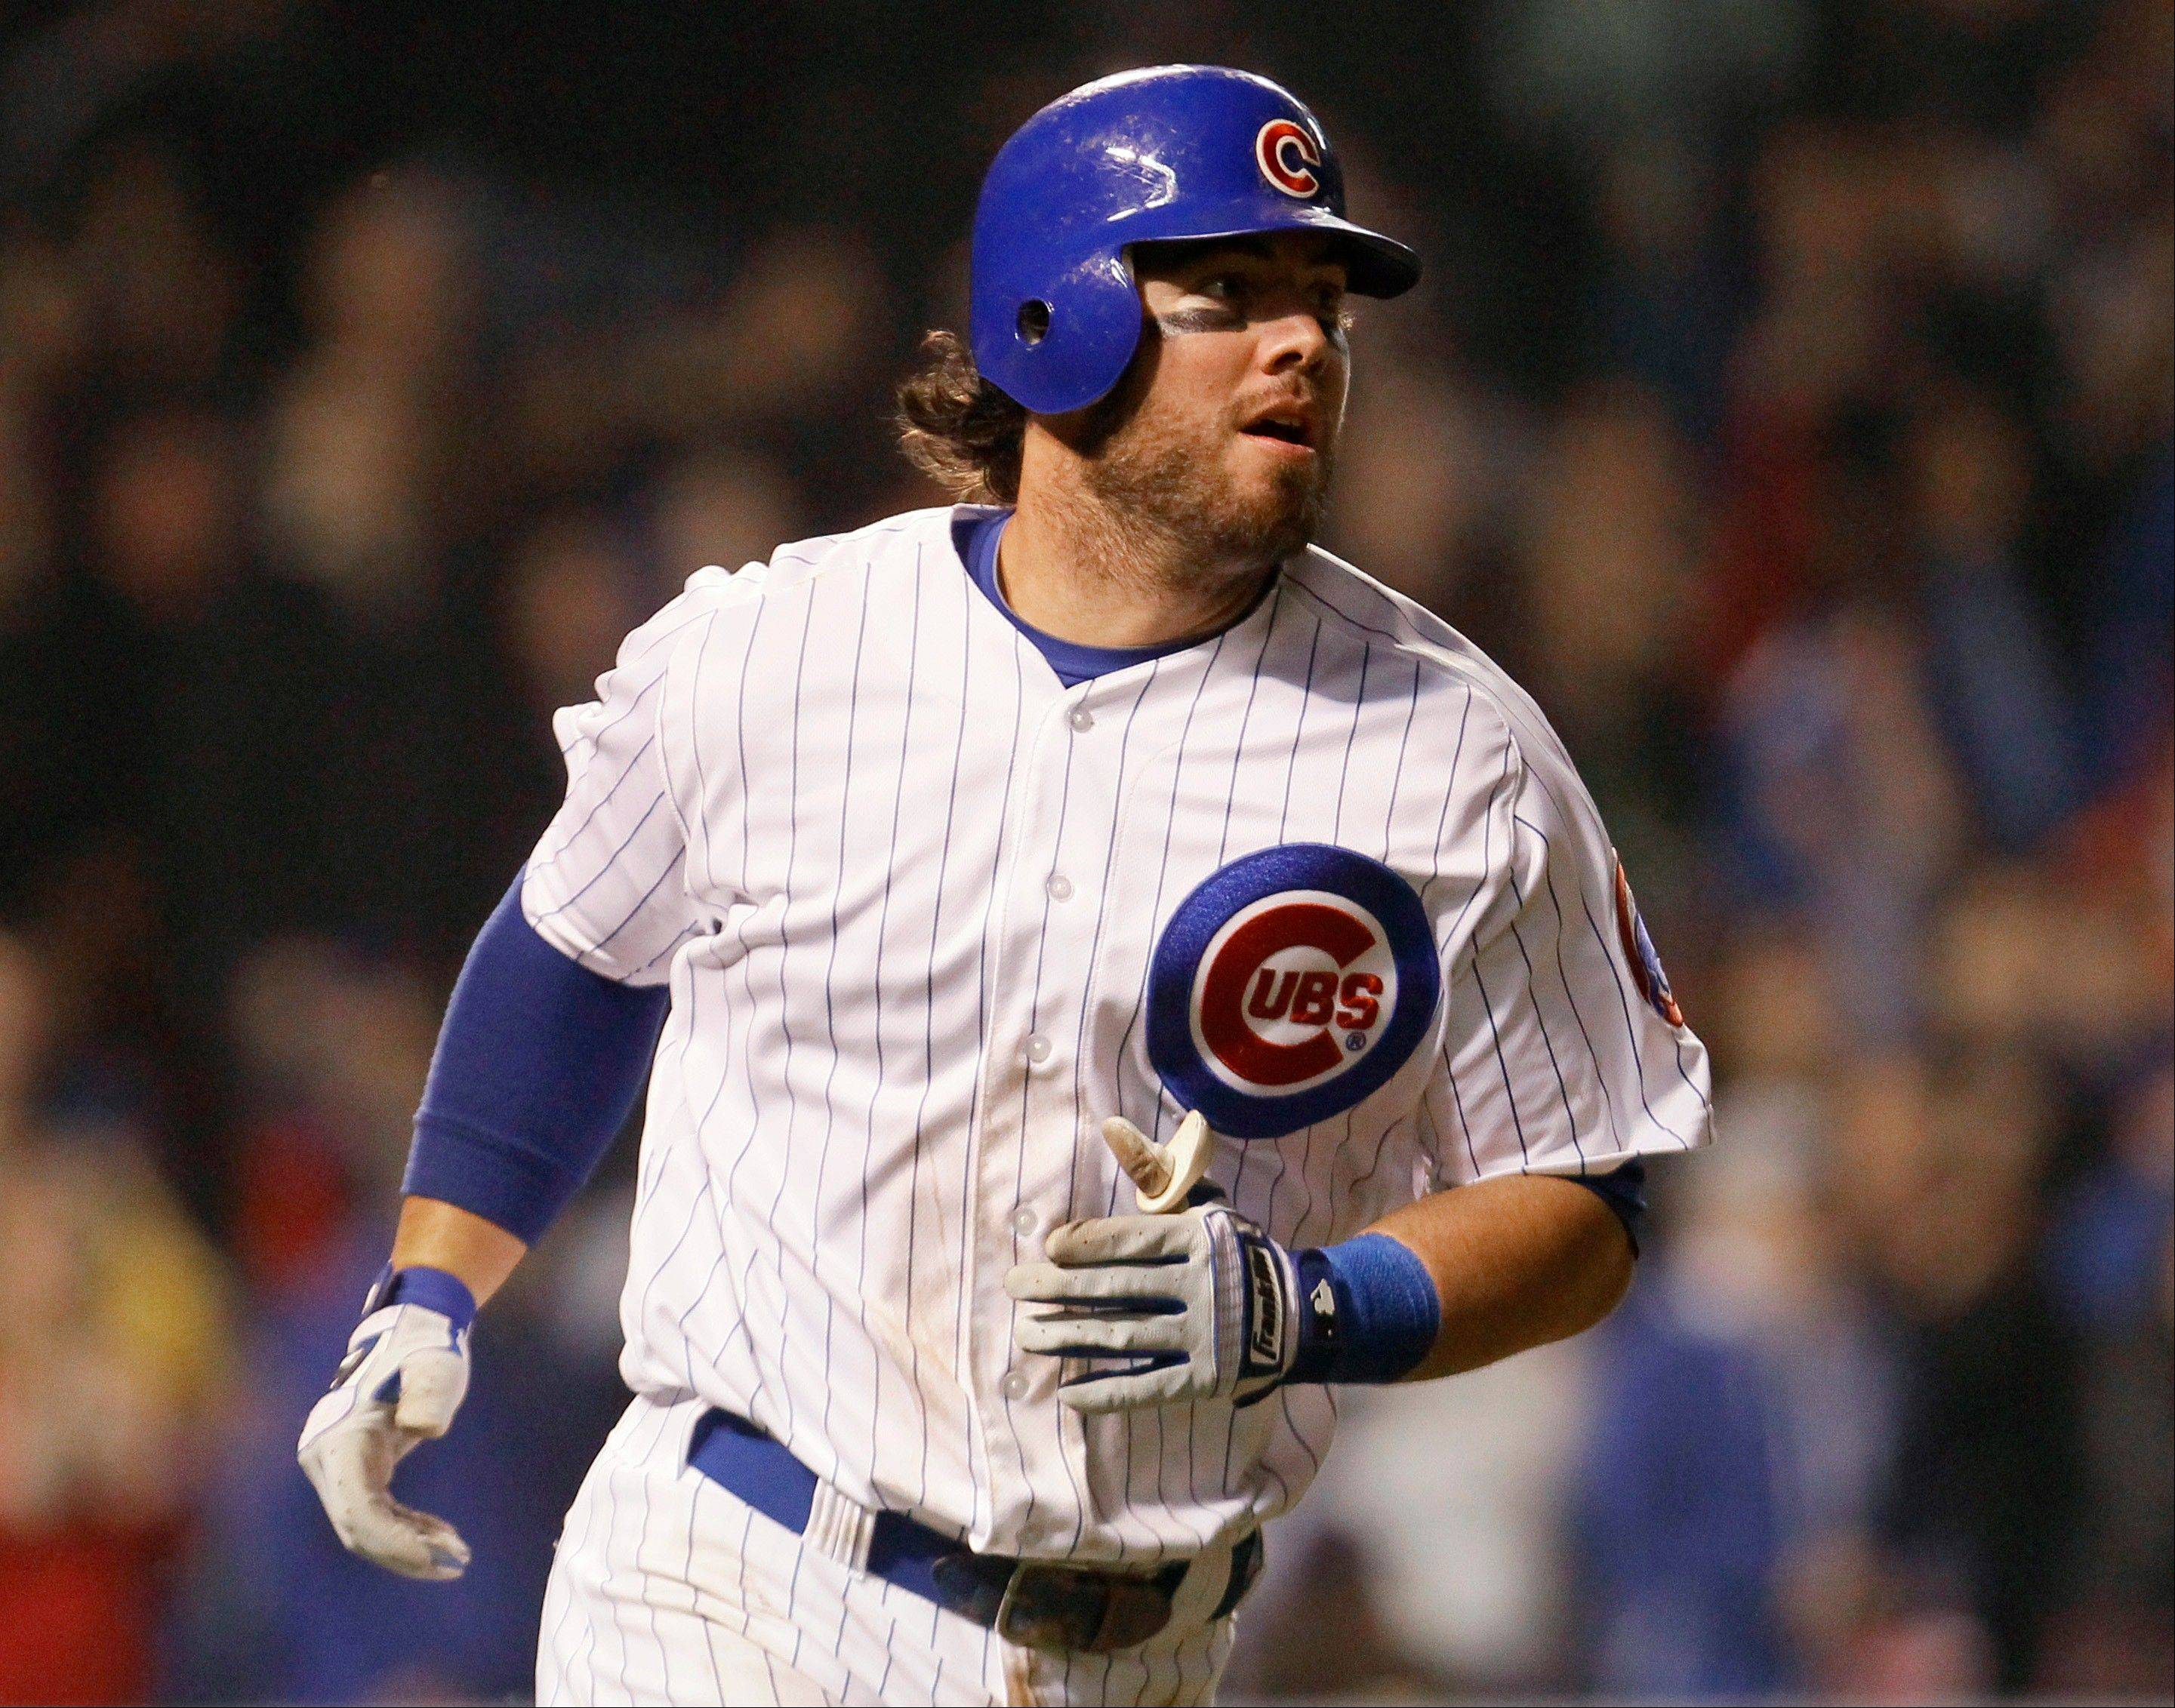 Cubs third baseman Ian Stewart has been injured much of the season.